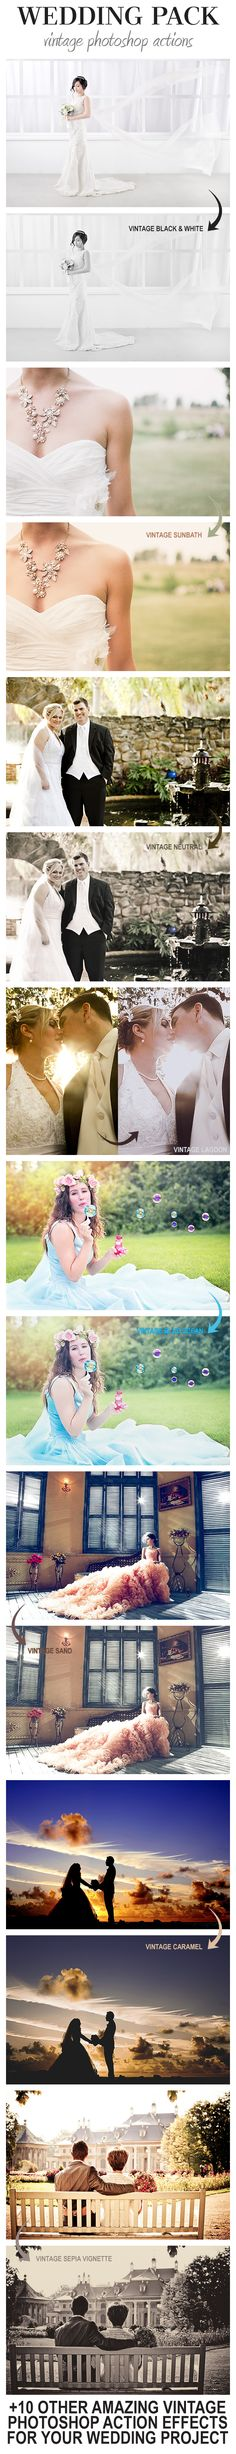 Wedding Pack - Vintage #Photoshop Actions - #Photo Effects #Actions Download here: https://graphicriver.net/item/wedding-pack-vintage-photoshop-actions/19702270?ref=alena994